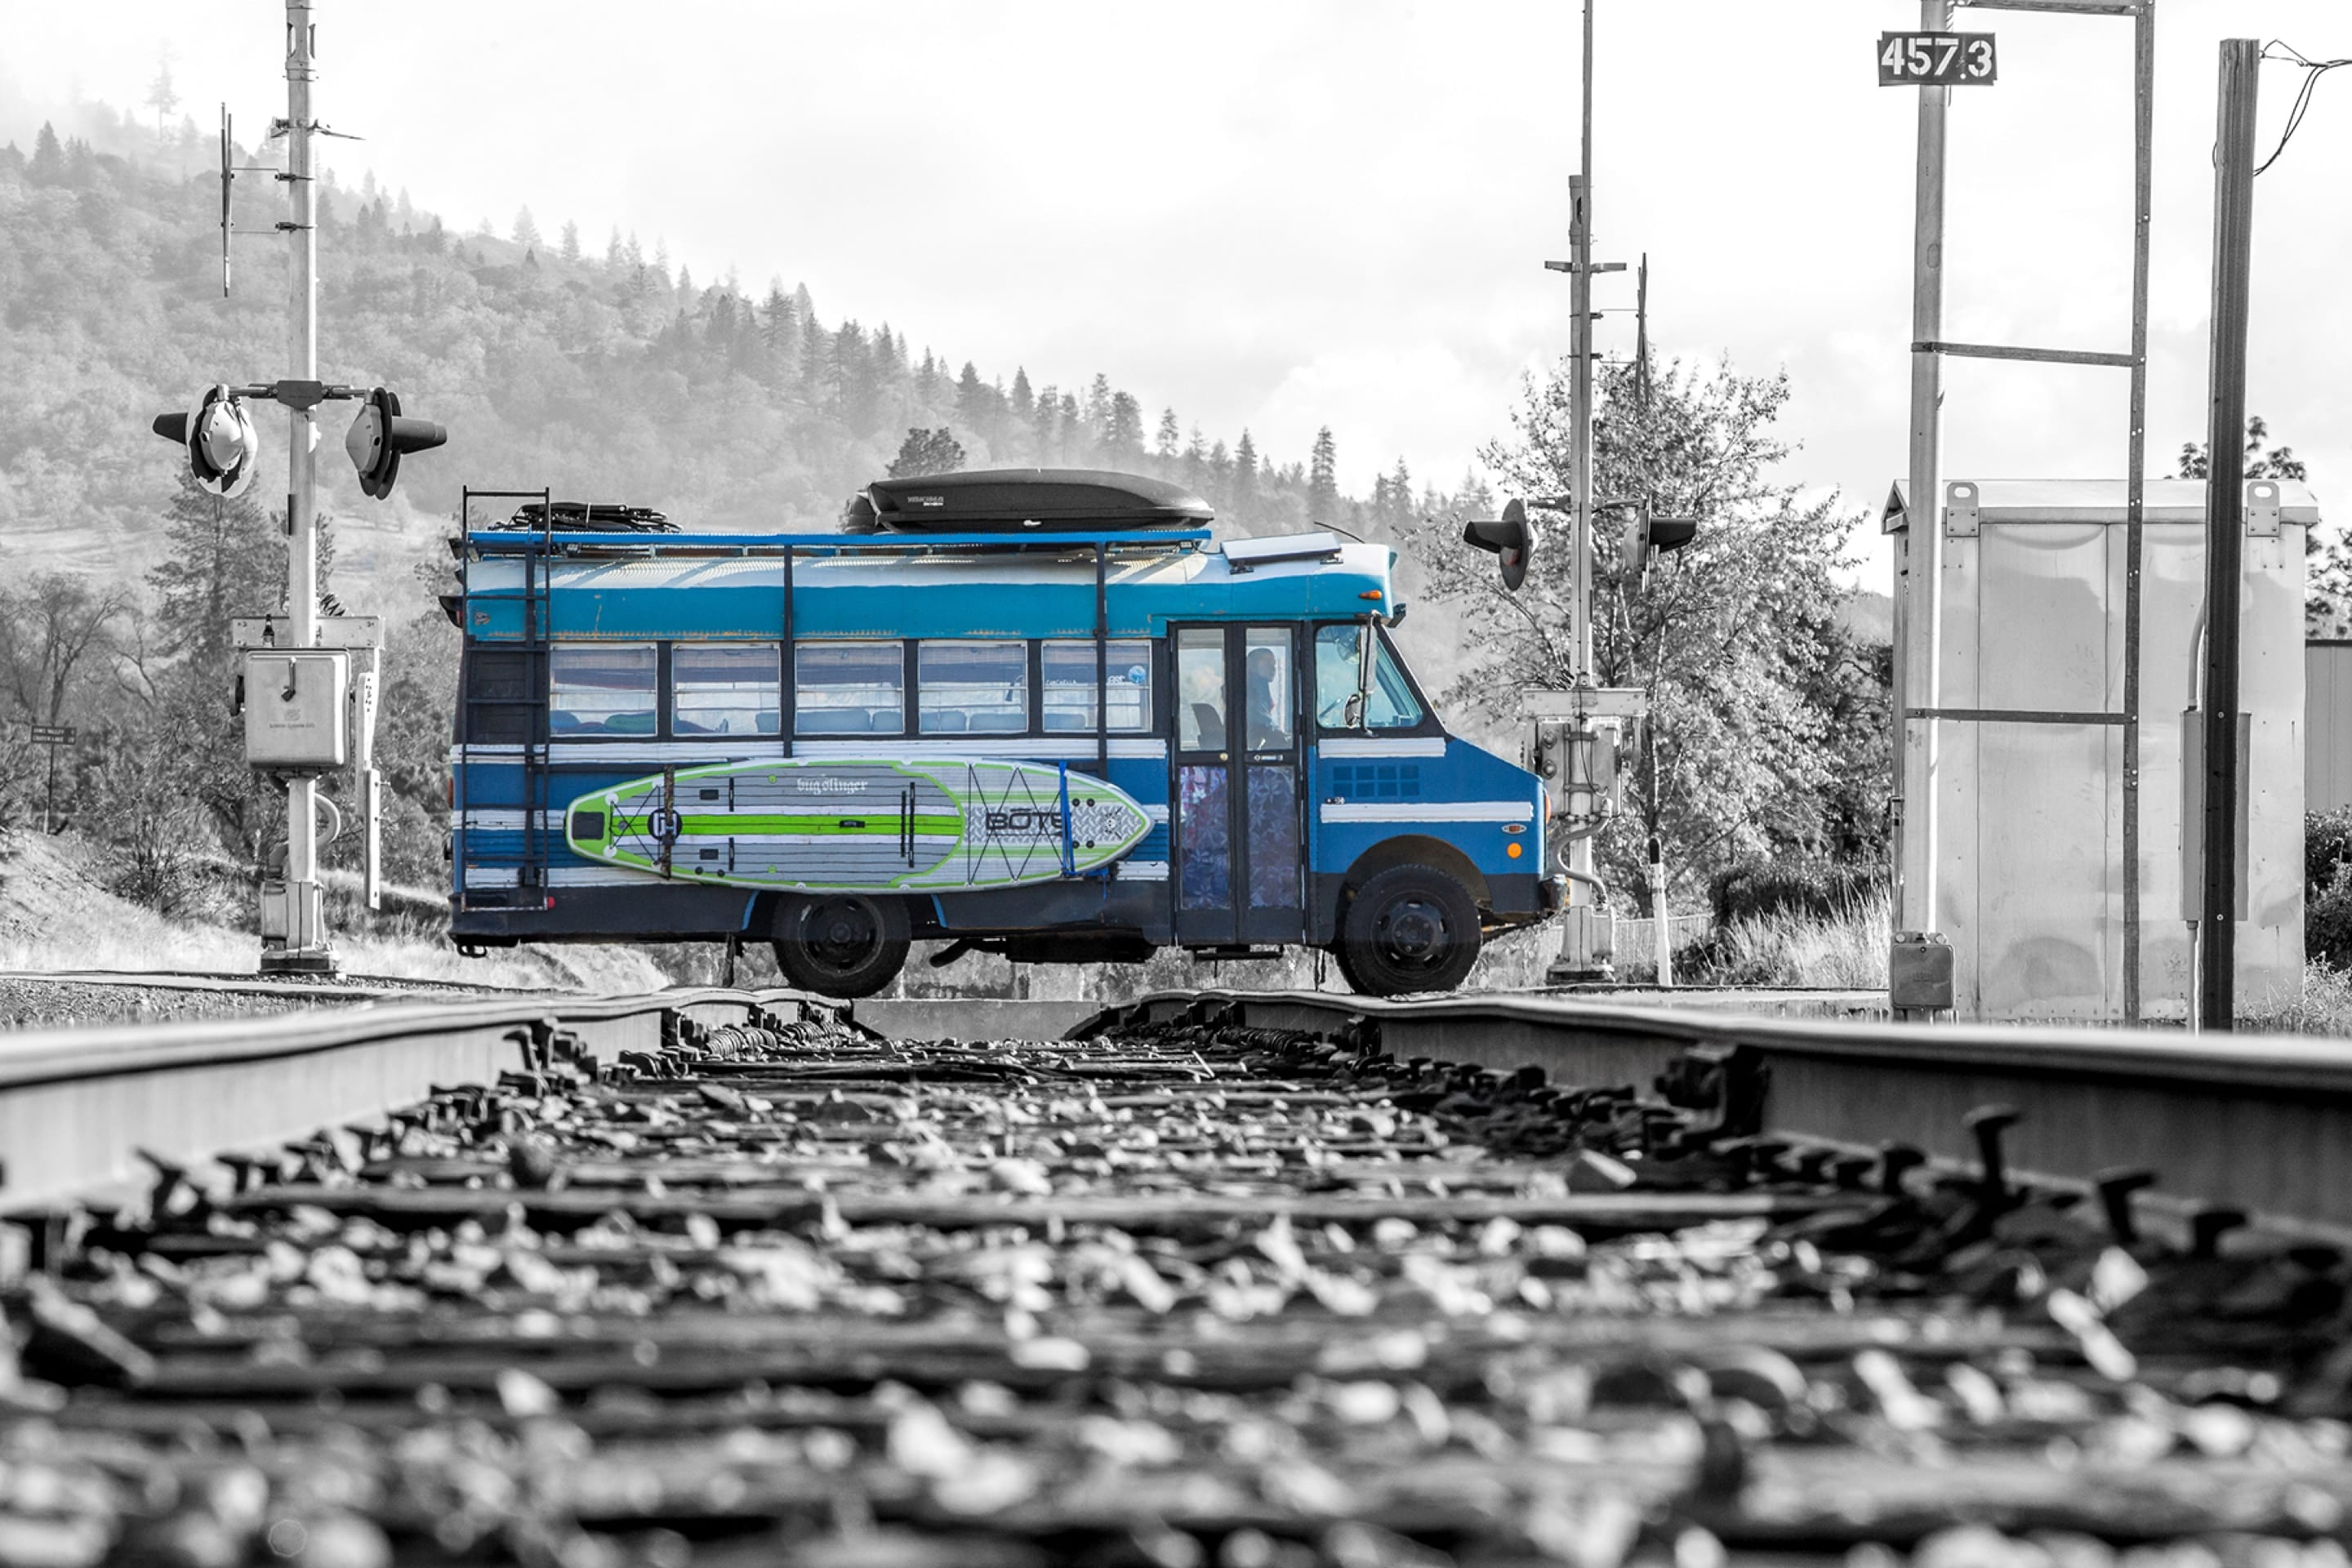 blue bus crossing railroad tracks with BOTE paddle board on the side